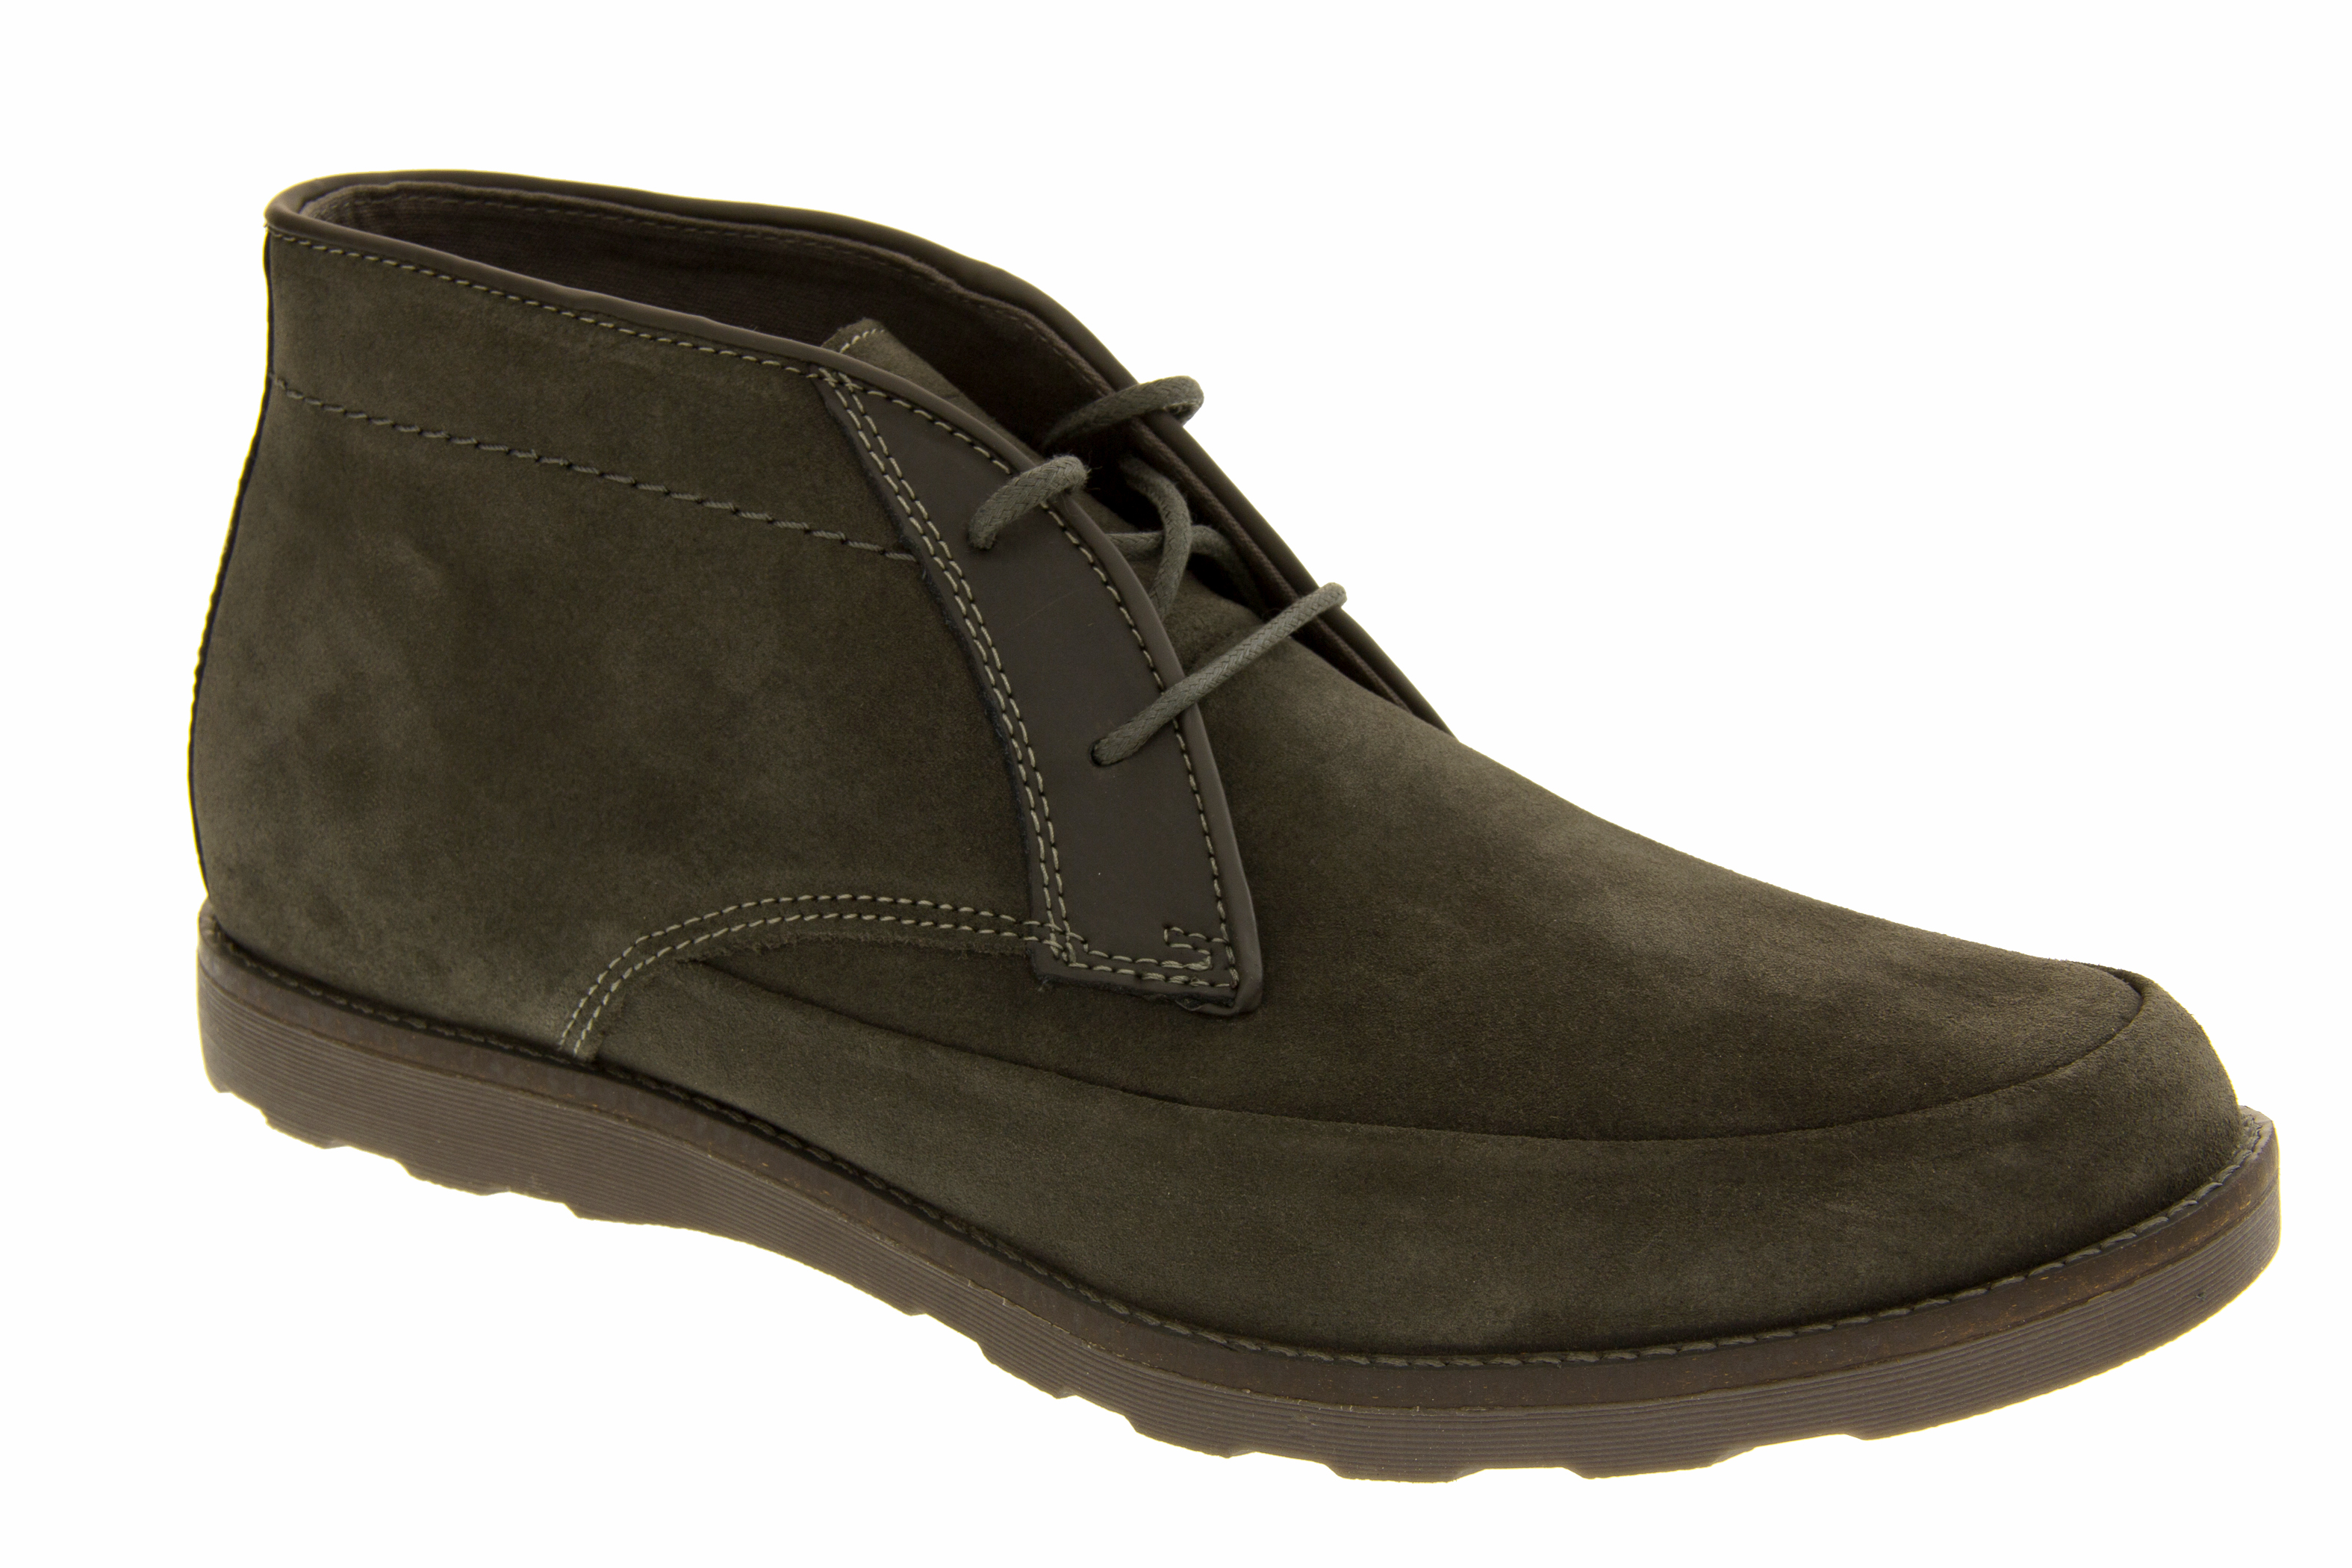 mens skechers real suede boots casual lace up leather desert ankle boot size 6 5 ebay. Black Bedroom Furniture Sets. Home Design Ideas